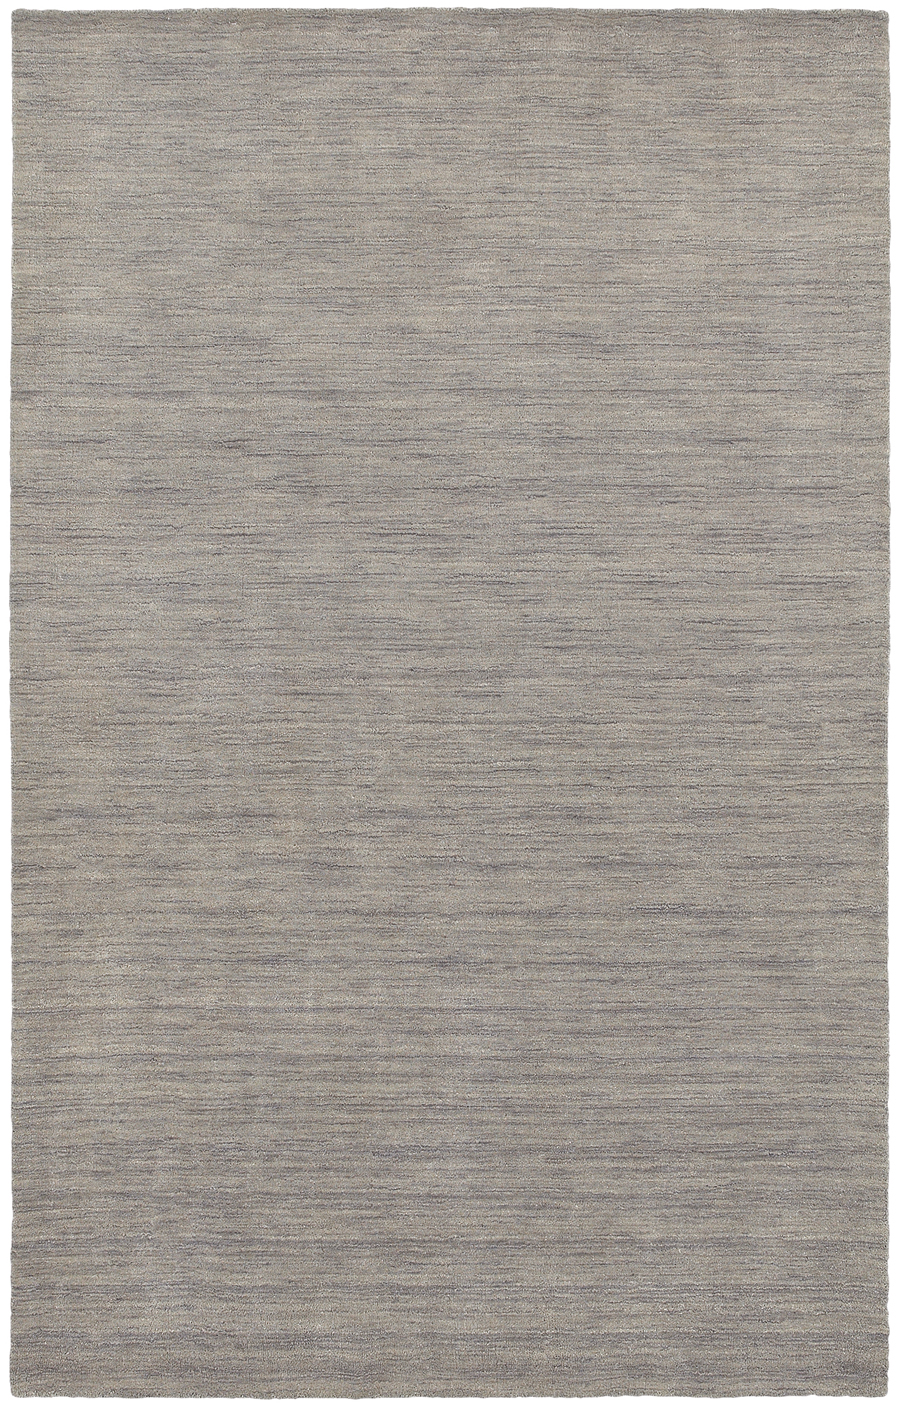 Oriental Weavers Sphinx Aniston 27108 Rug